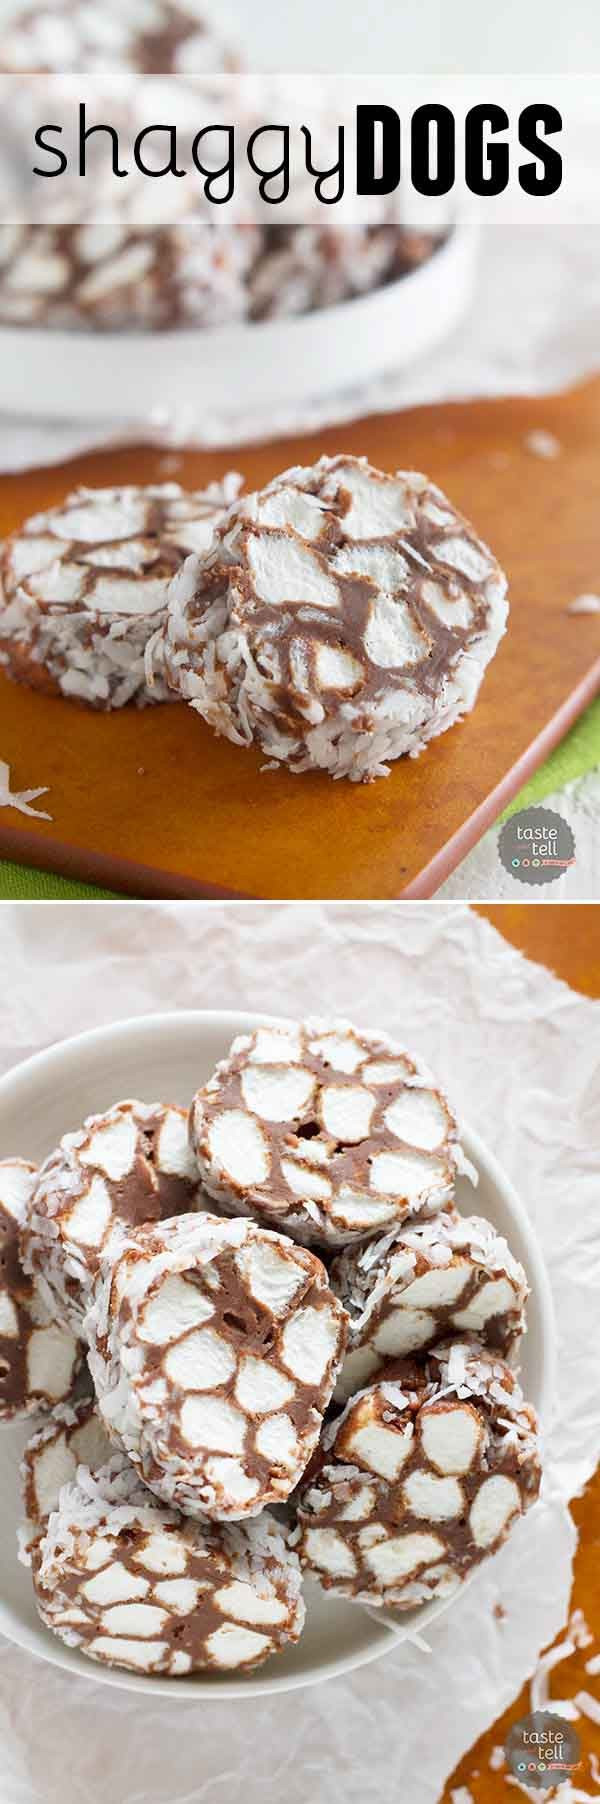 Old Fashioned Christmas Candy Recipes  Shaggy Dog Candy Recipe Taste and Tell